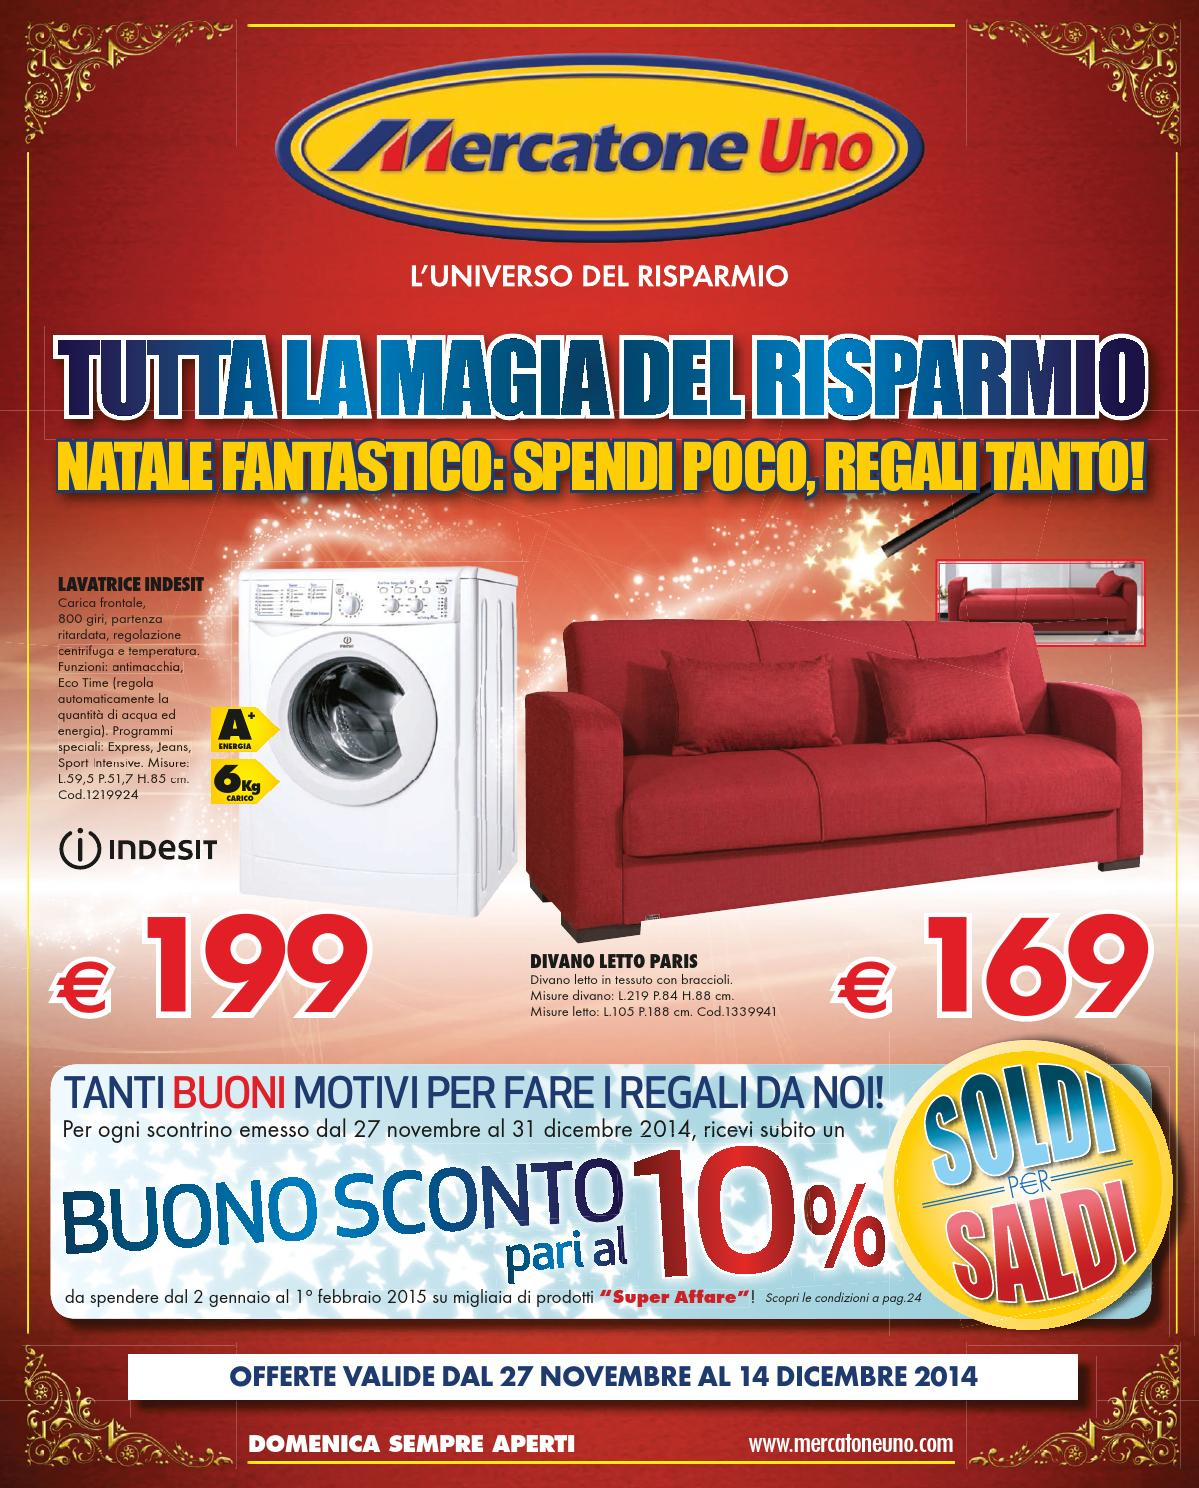 Mercatone uno catalogo natale2014 by mobilpro issuu for Divano mercatone uno